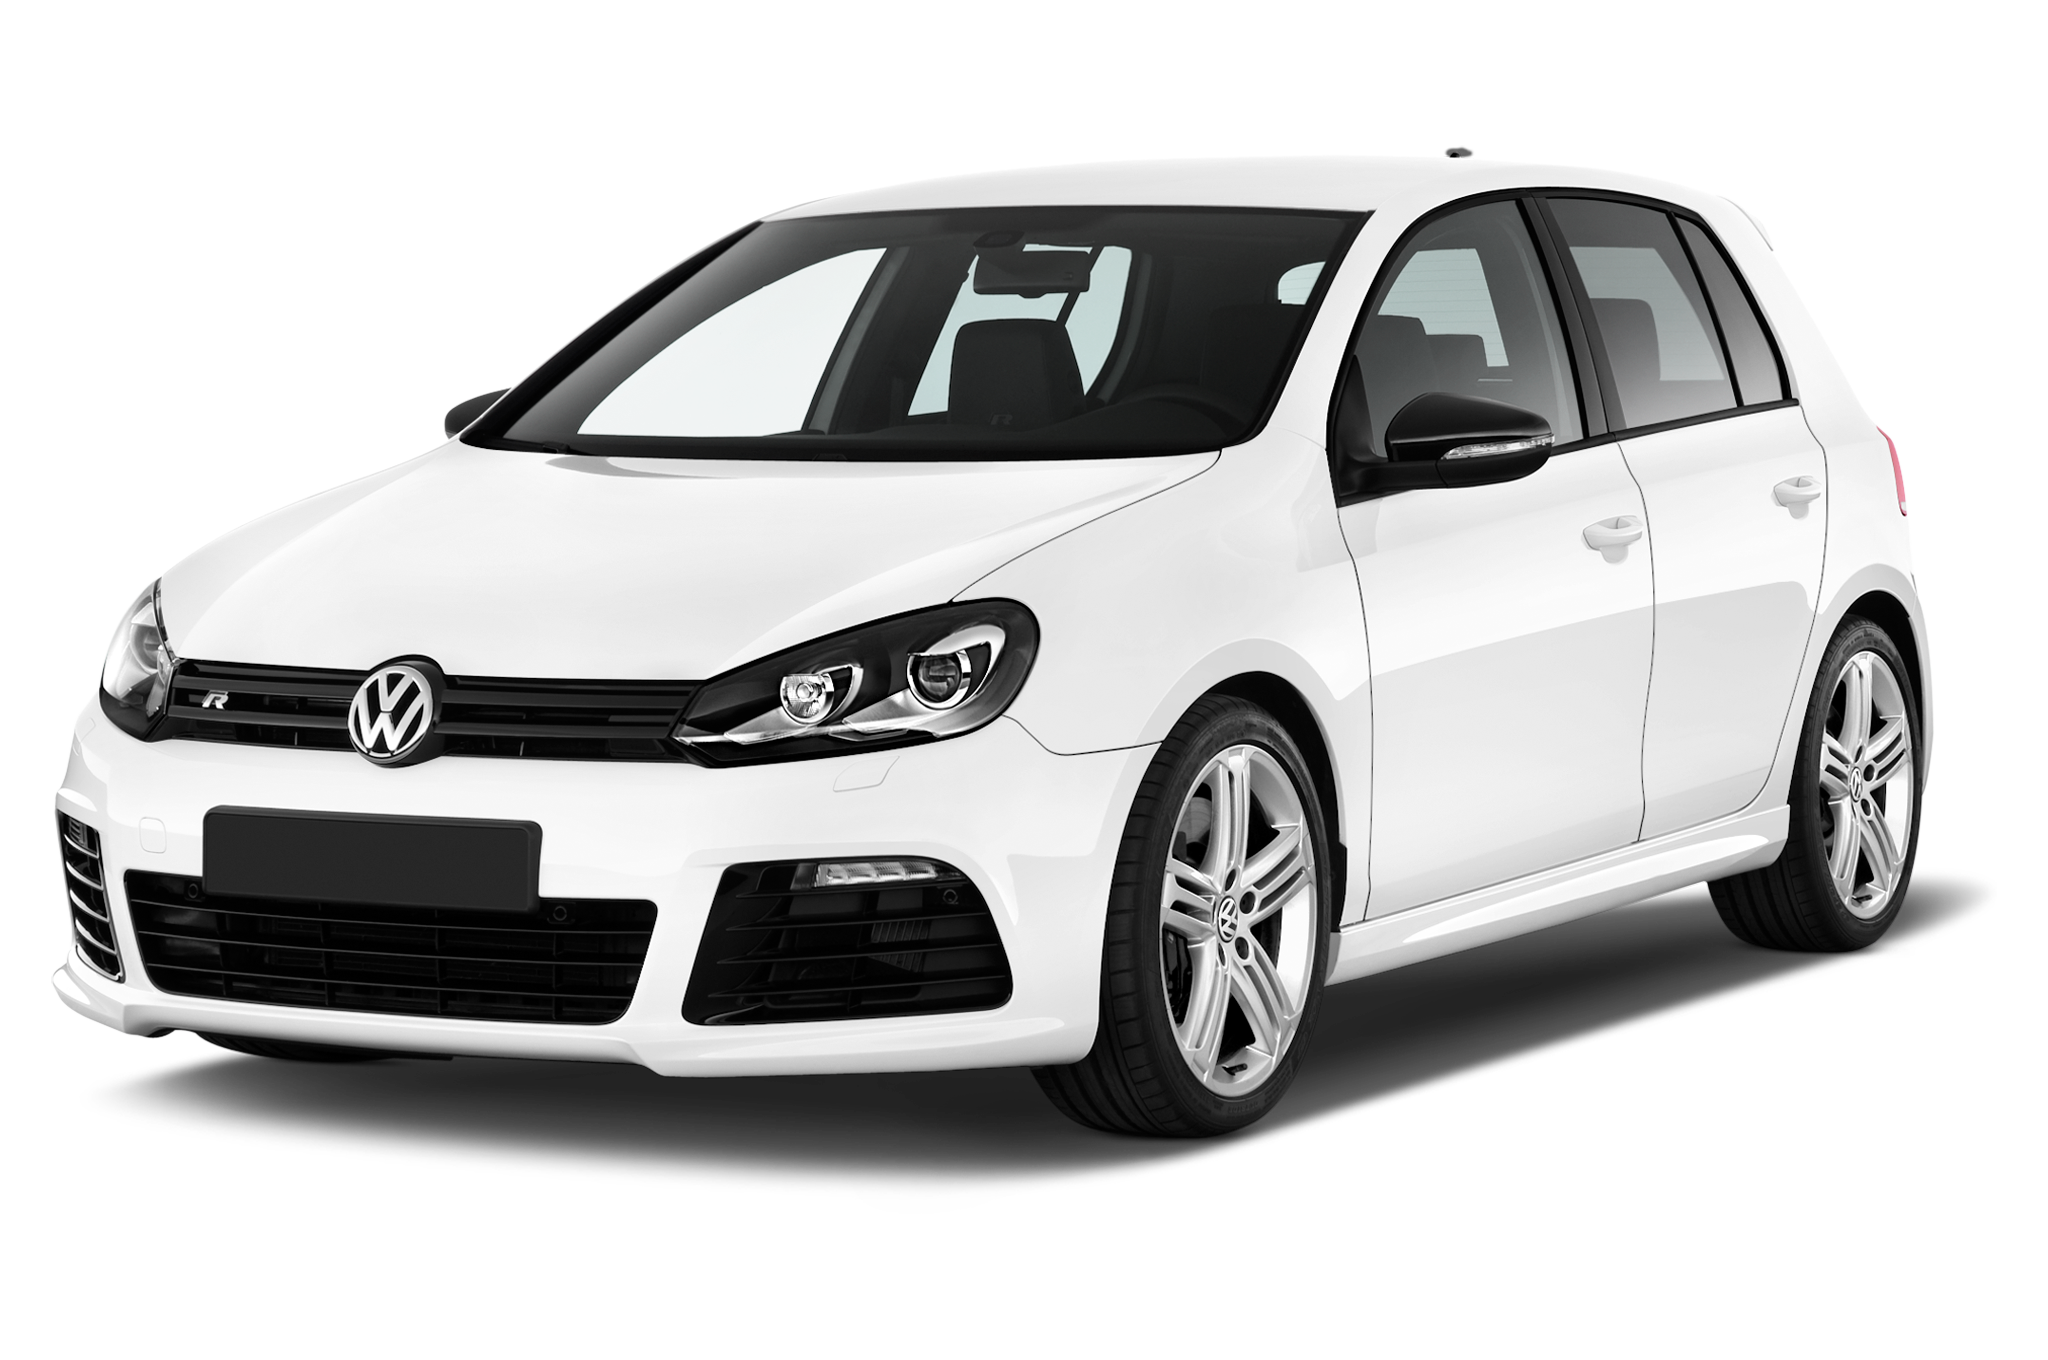 2012 Volkswagen Golf #20